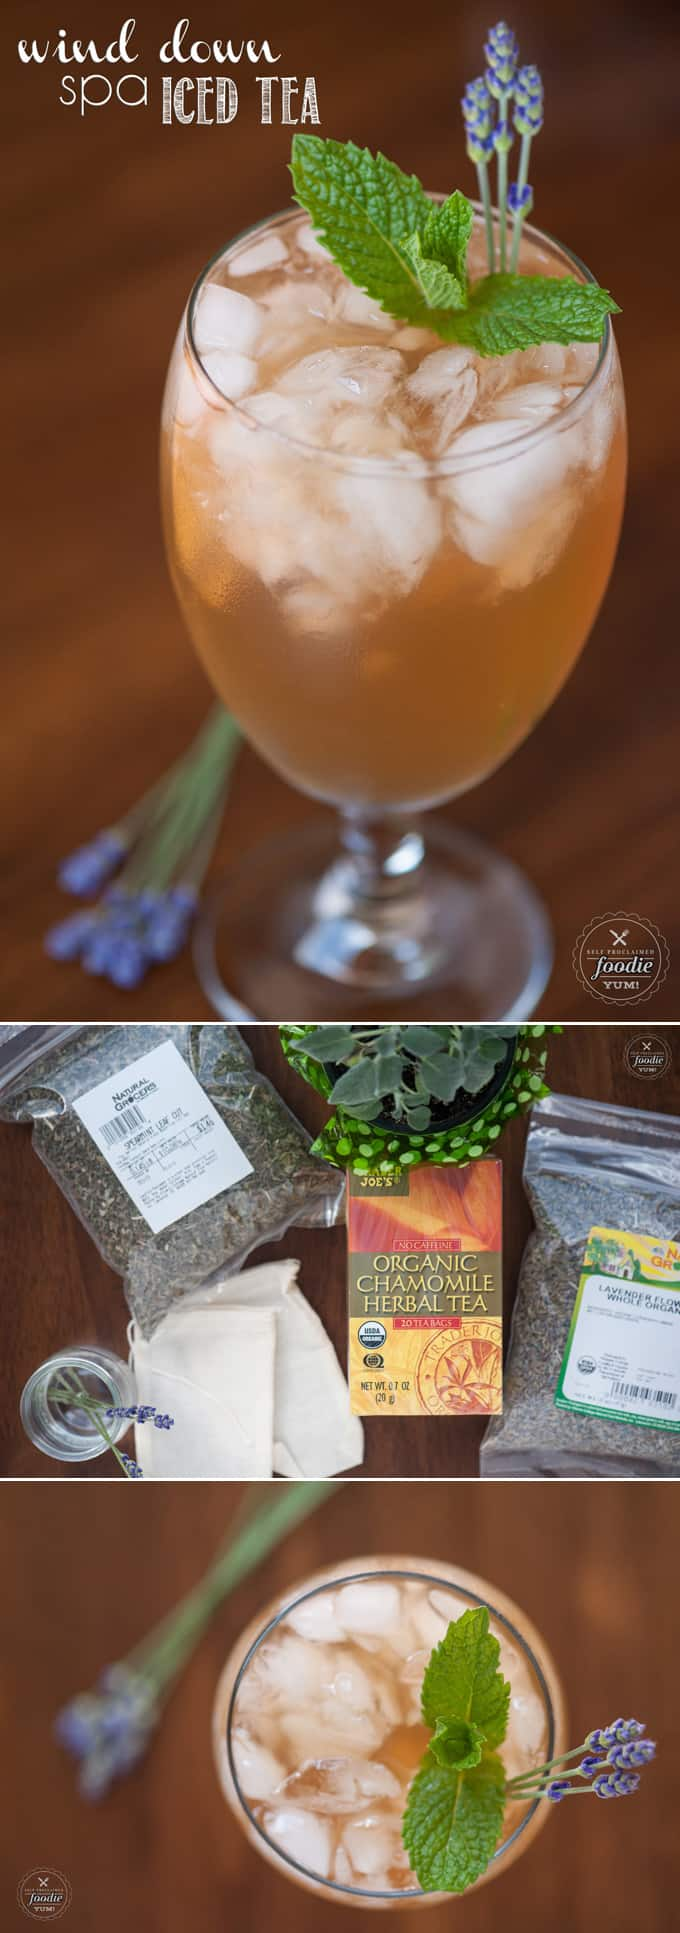 Transform your relaxing chamomile tea into this Wind Down Spa Iced Tea by infusing the vibrant flavors of lavender, sage, peppermint, and cloves.